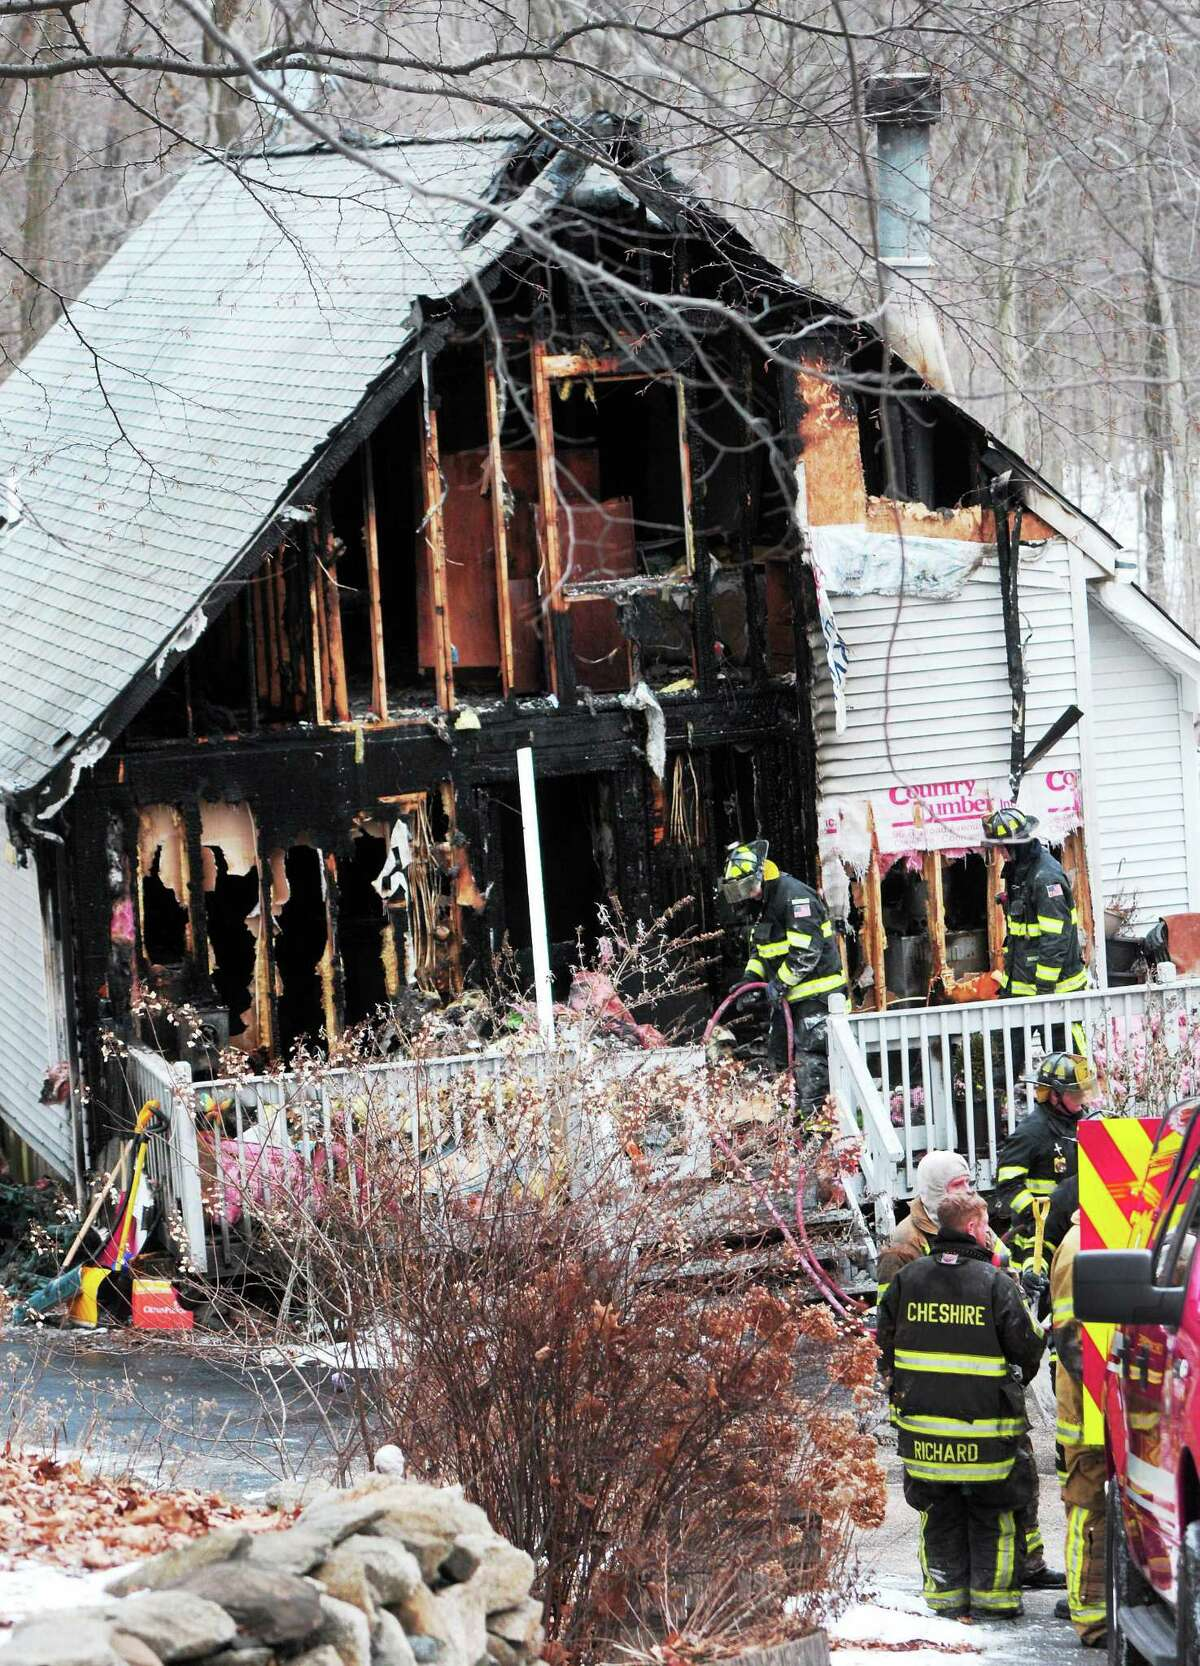 (Photo by Peter Hvizdak ó New Haven Register) 2-alarm fire Tuesday afternoon that displaced a family January 28, 2014 at 104 Hickory Lane in Cheshire, Connecticut